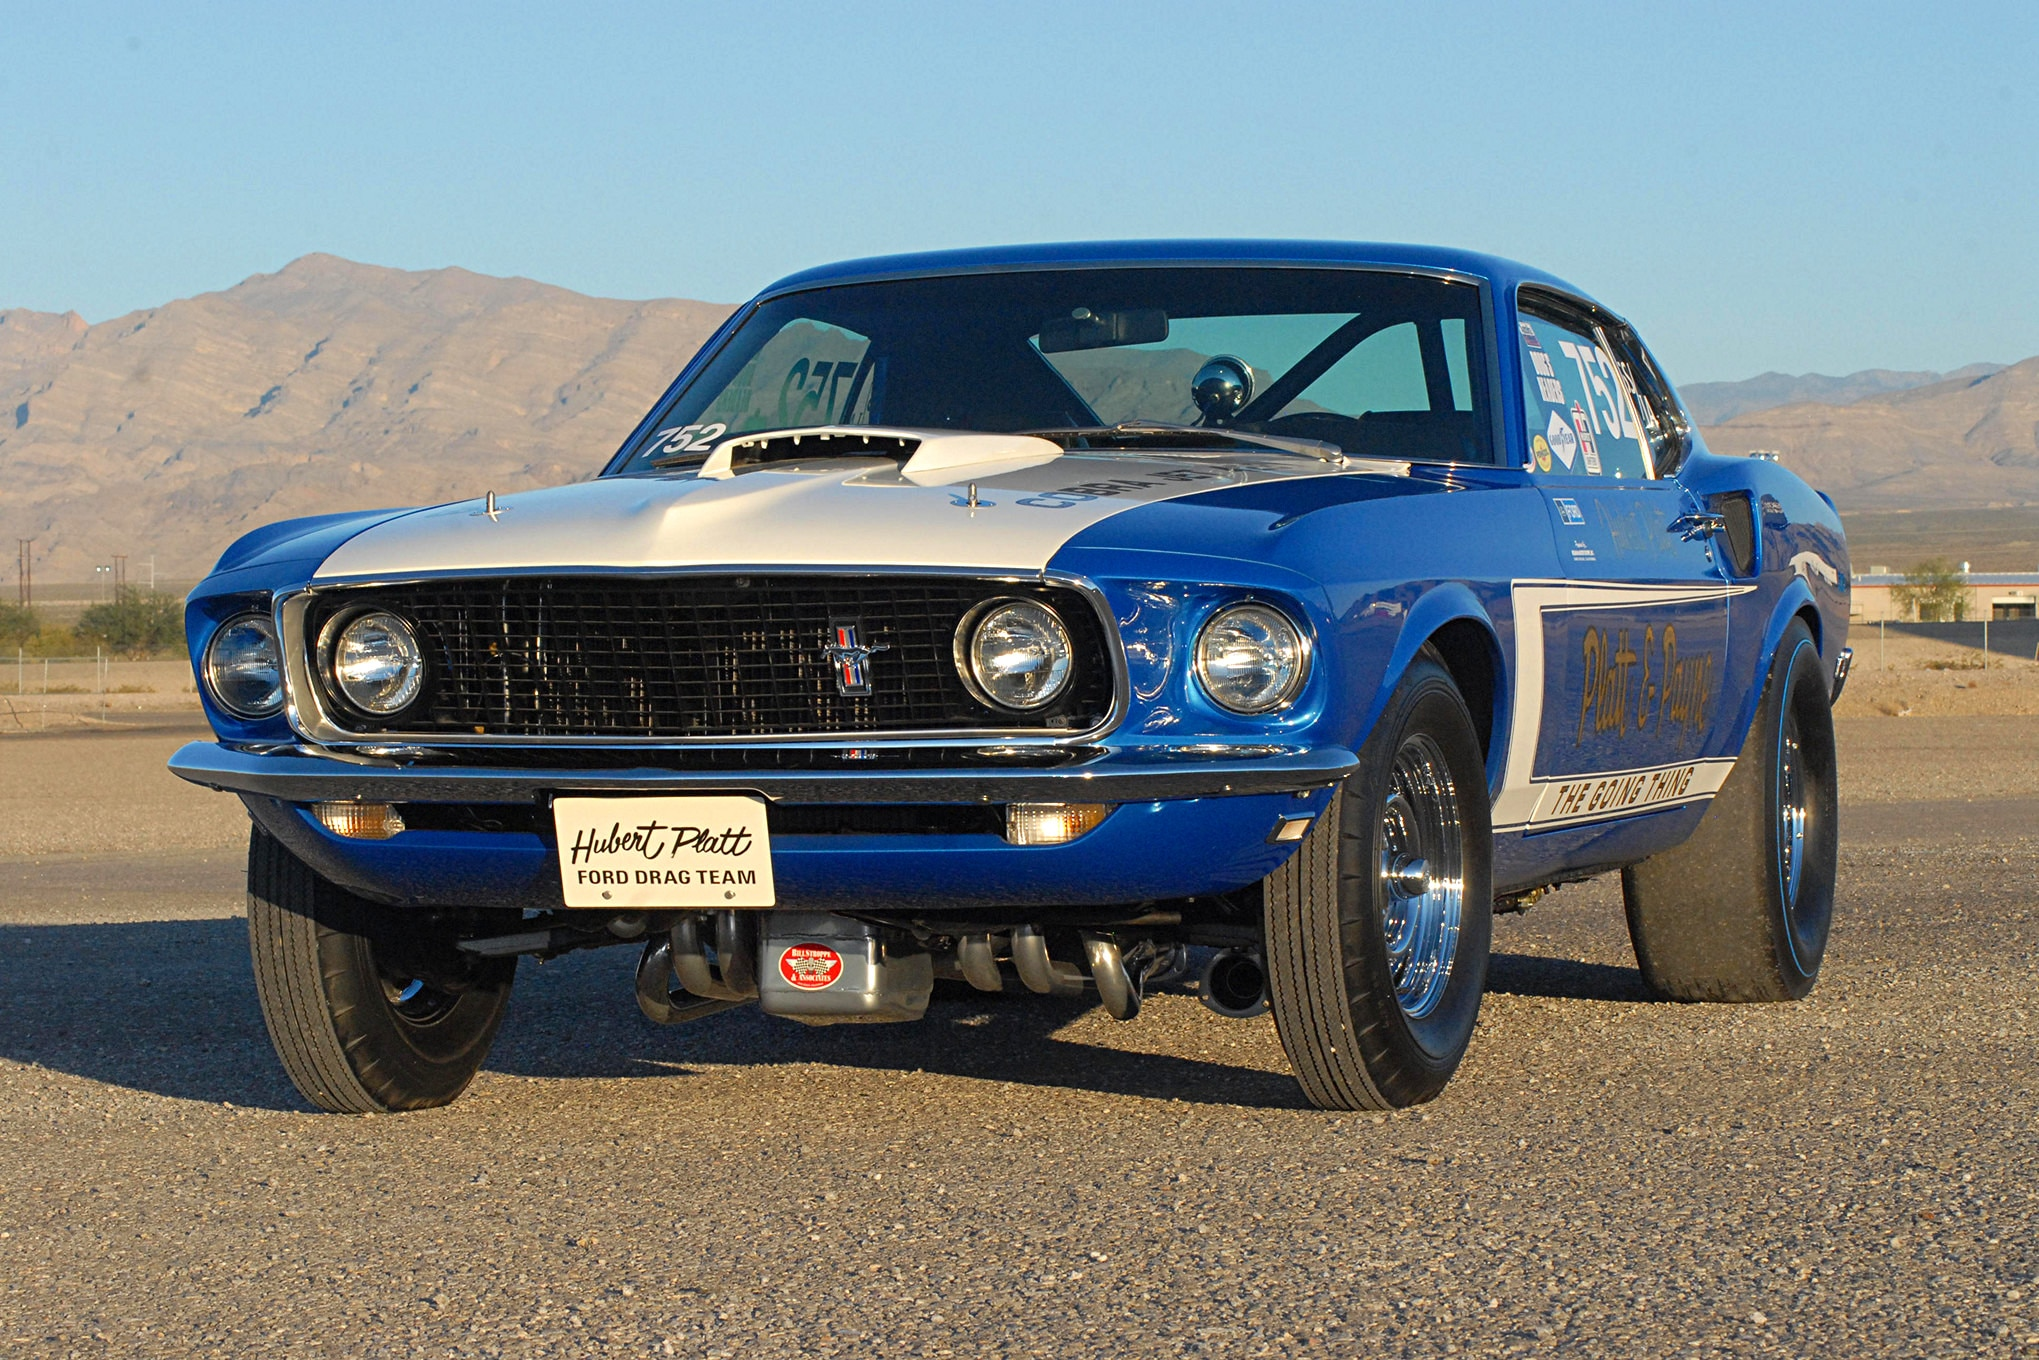 This is the view most of Hubert Platt's competitors saw of his 1969 Cobra Jet Mustang. With the exception of the thermal-coated headers, the CJ's restoration is spot-on.